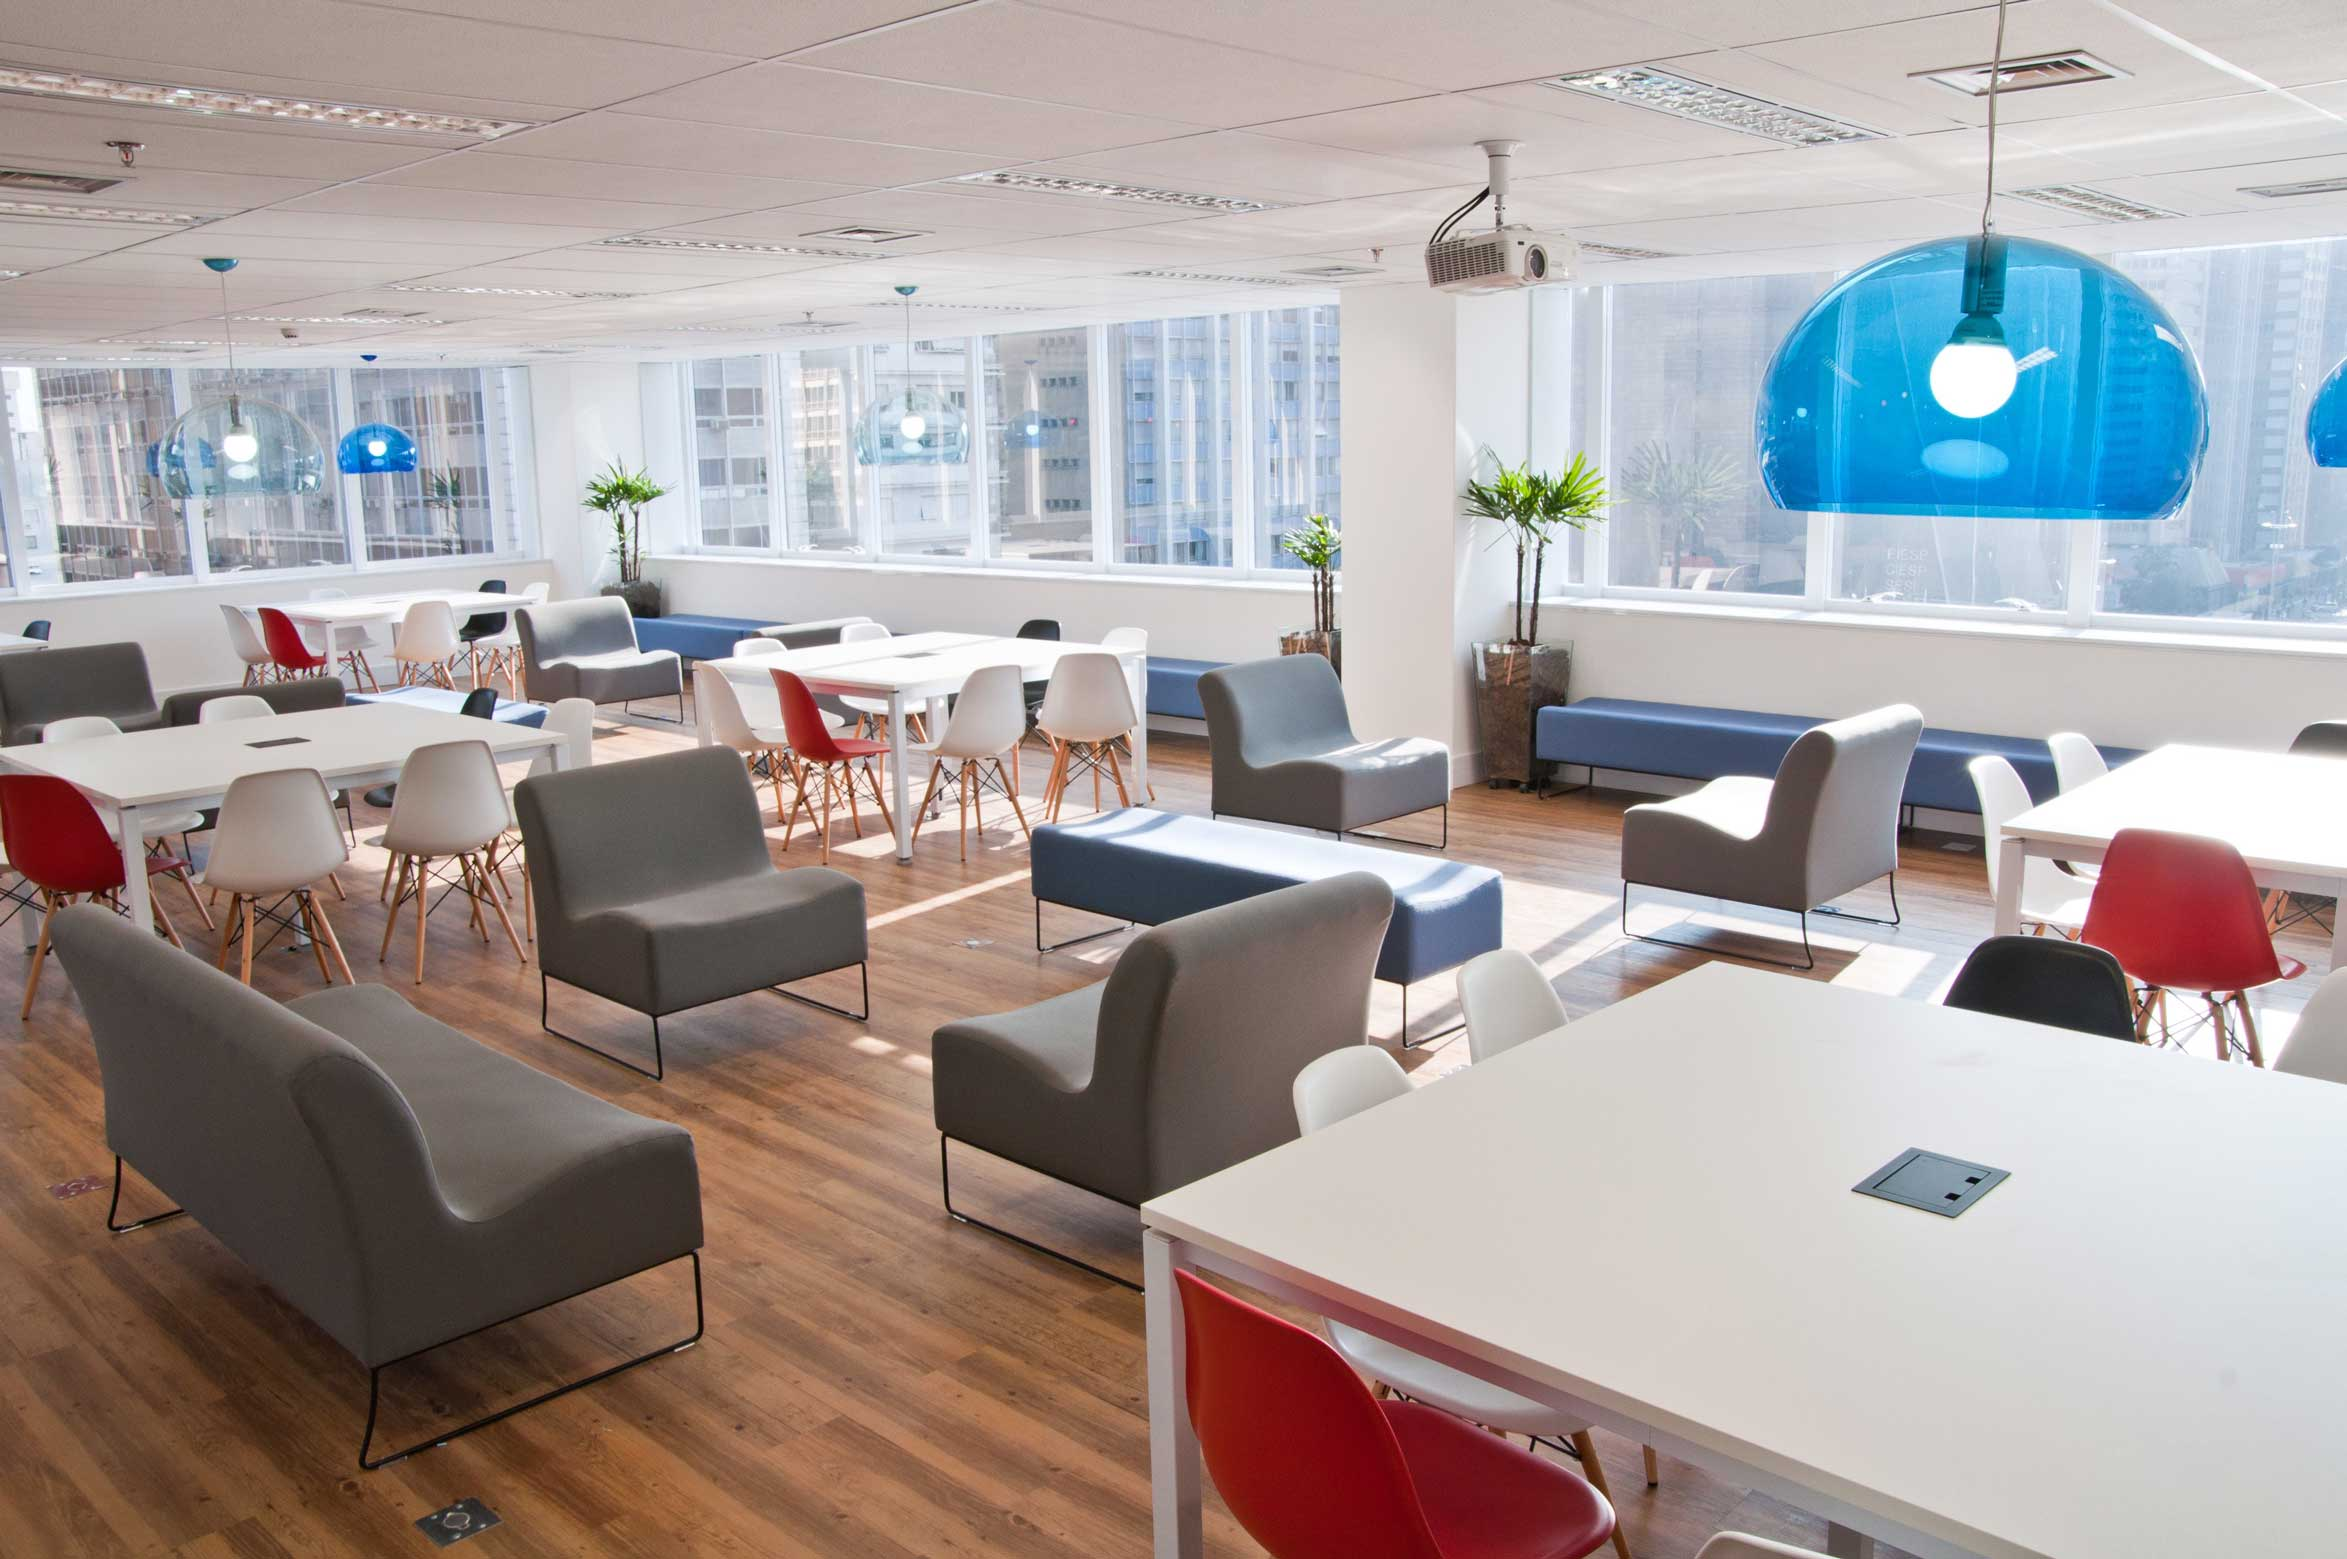 Why Coworking Spaces Work